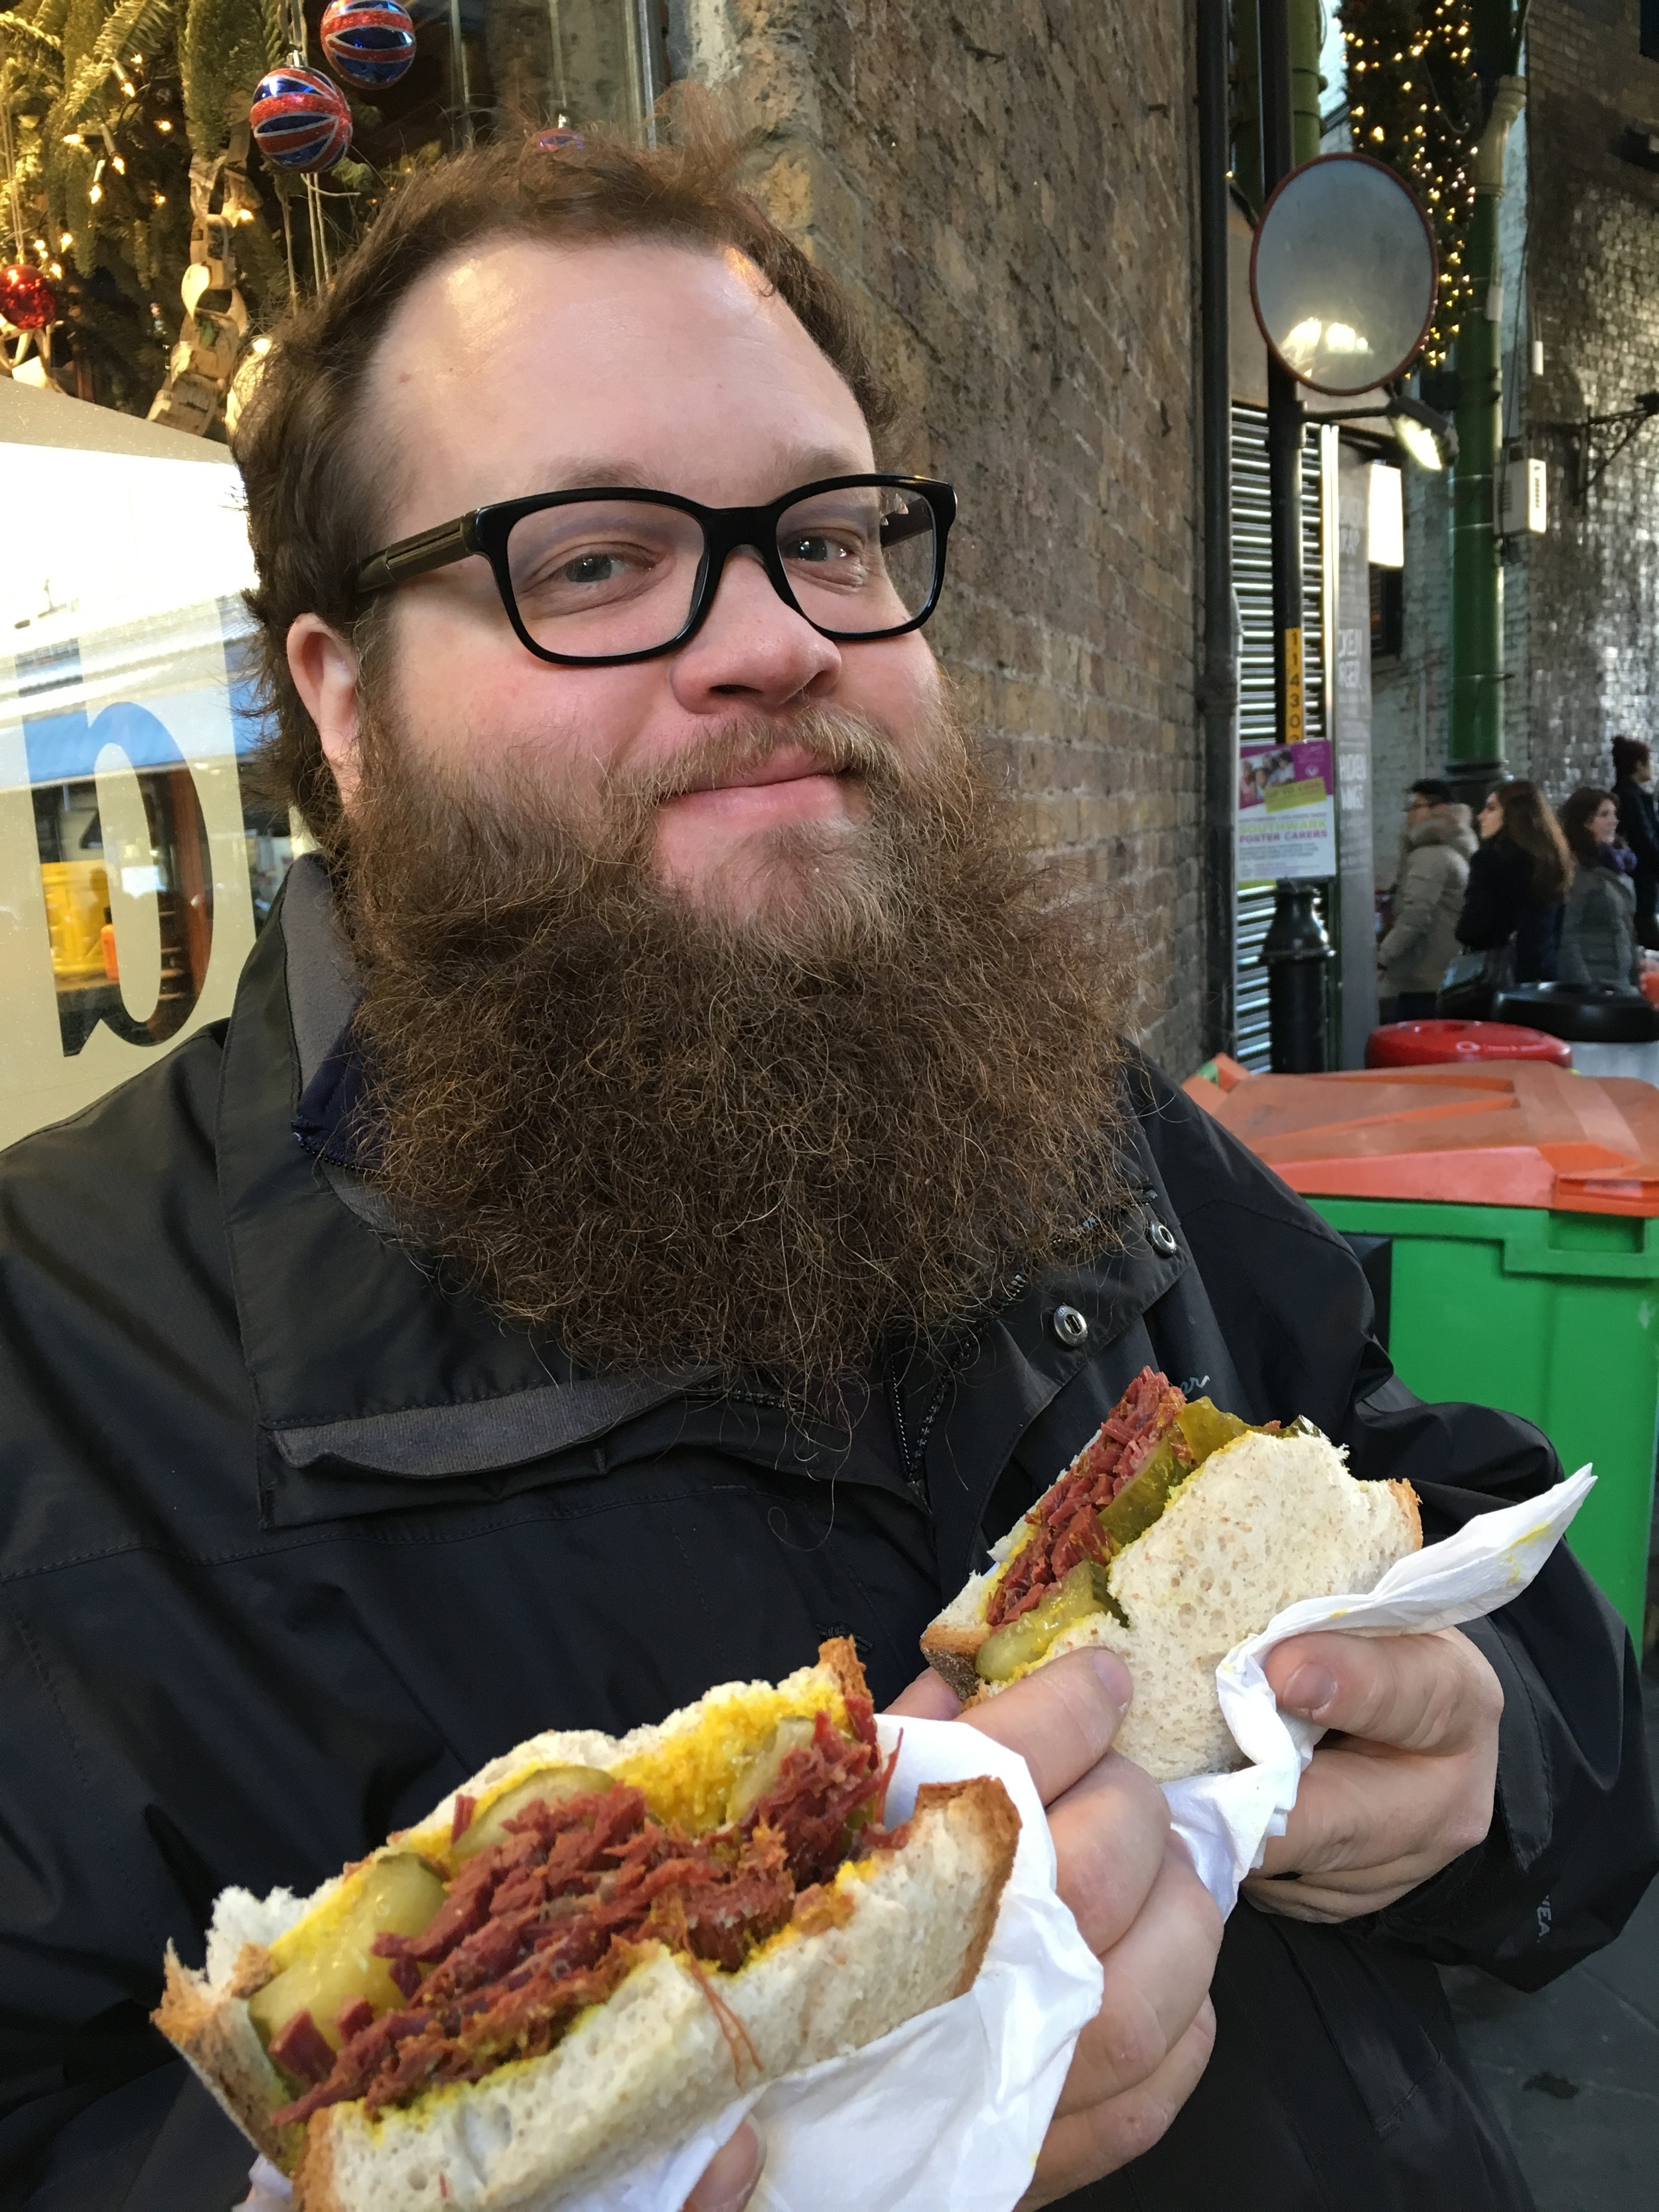 Brian REALLY wanted his picture with this sandwich (look at that sparkle in his eyes!). To be fair, it was delicious—shredded corned beef, mustard, and pickles.